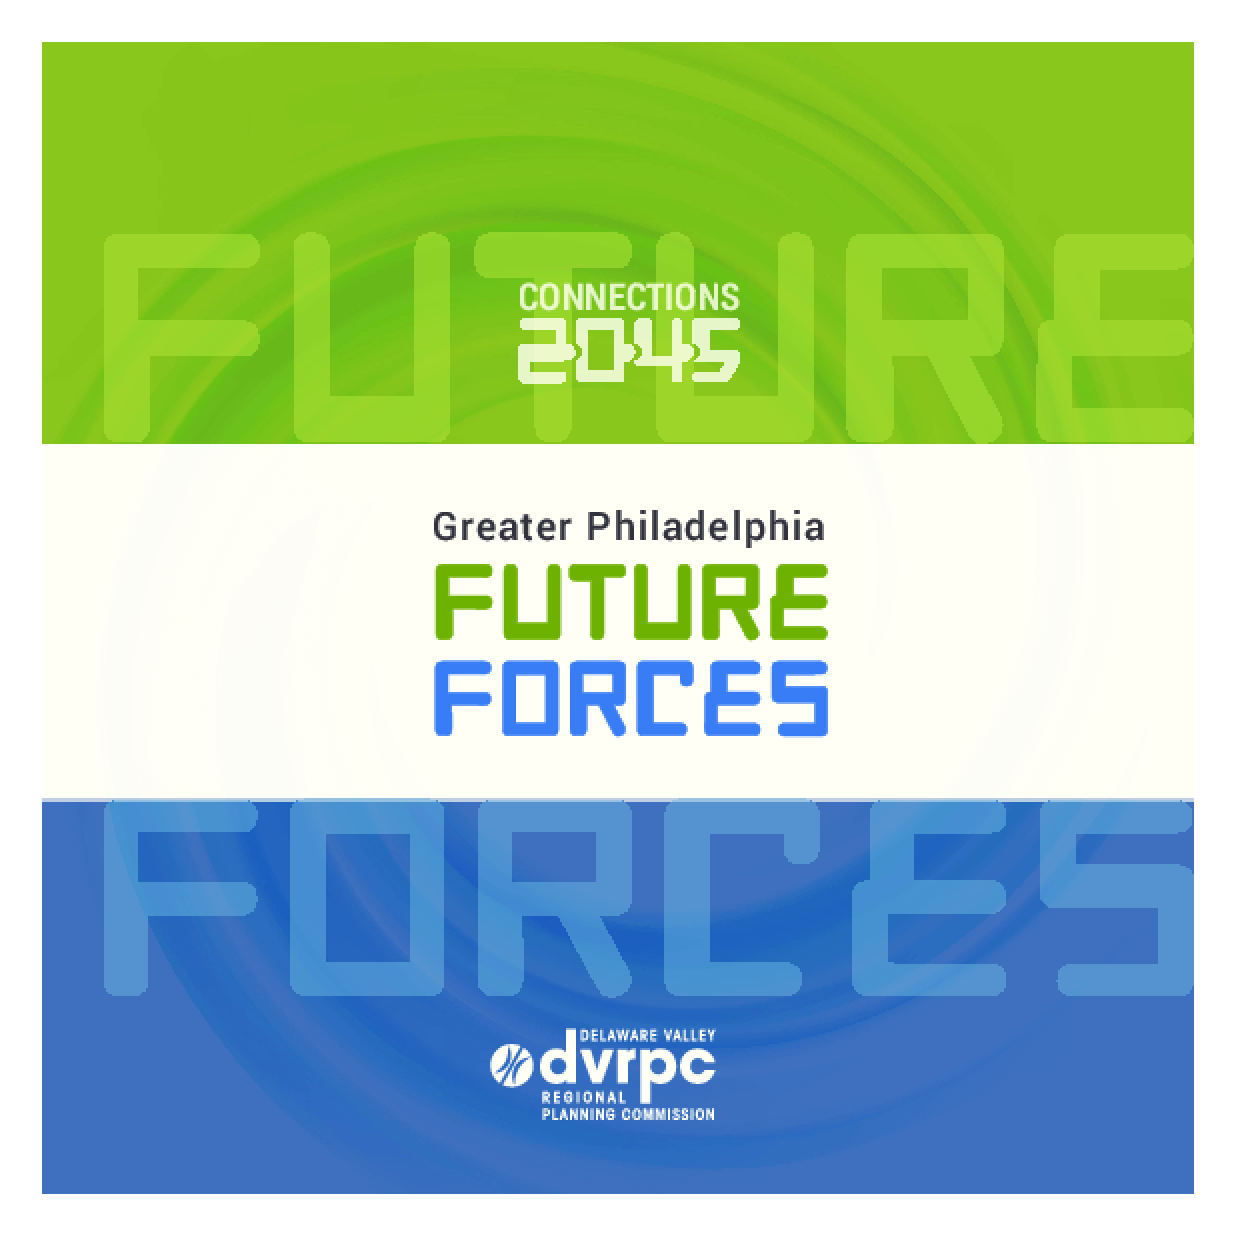 Greater Philadelphia Future Forces